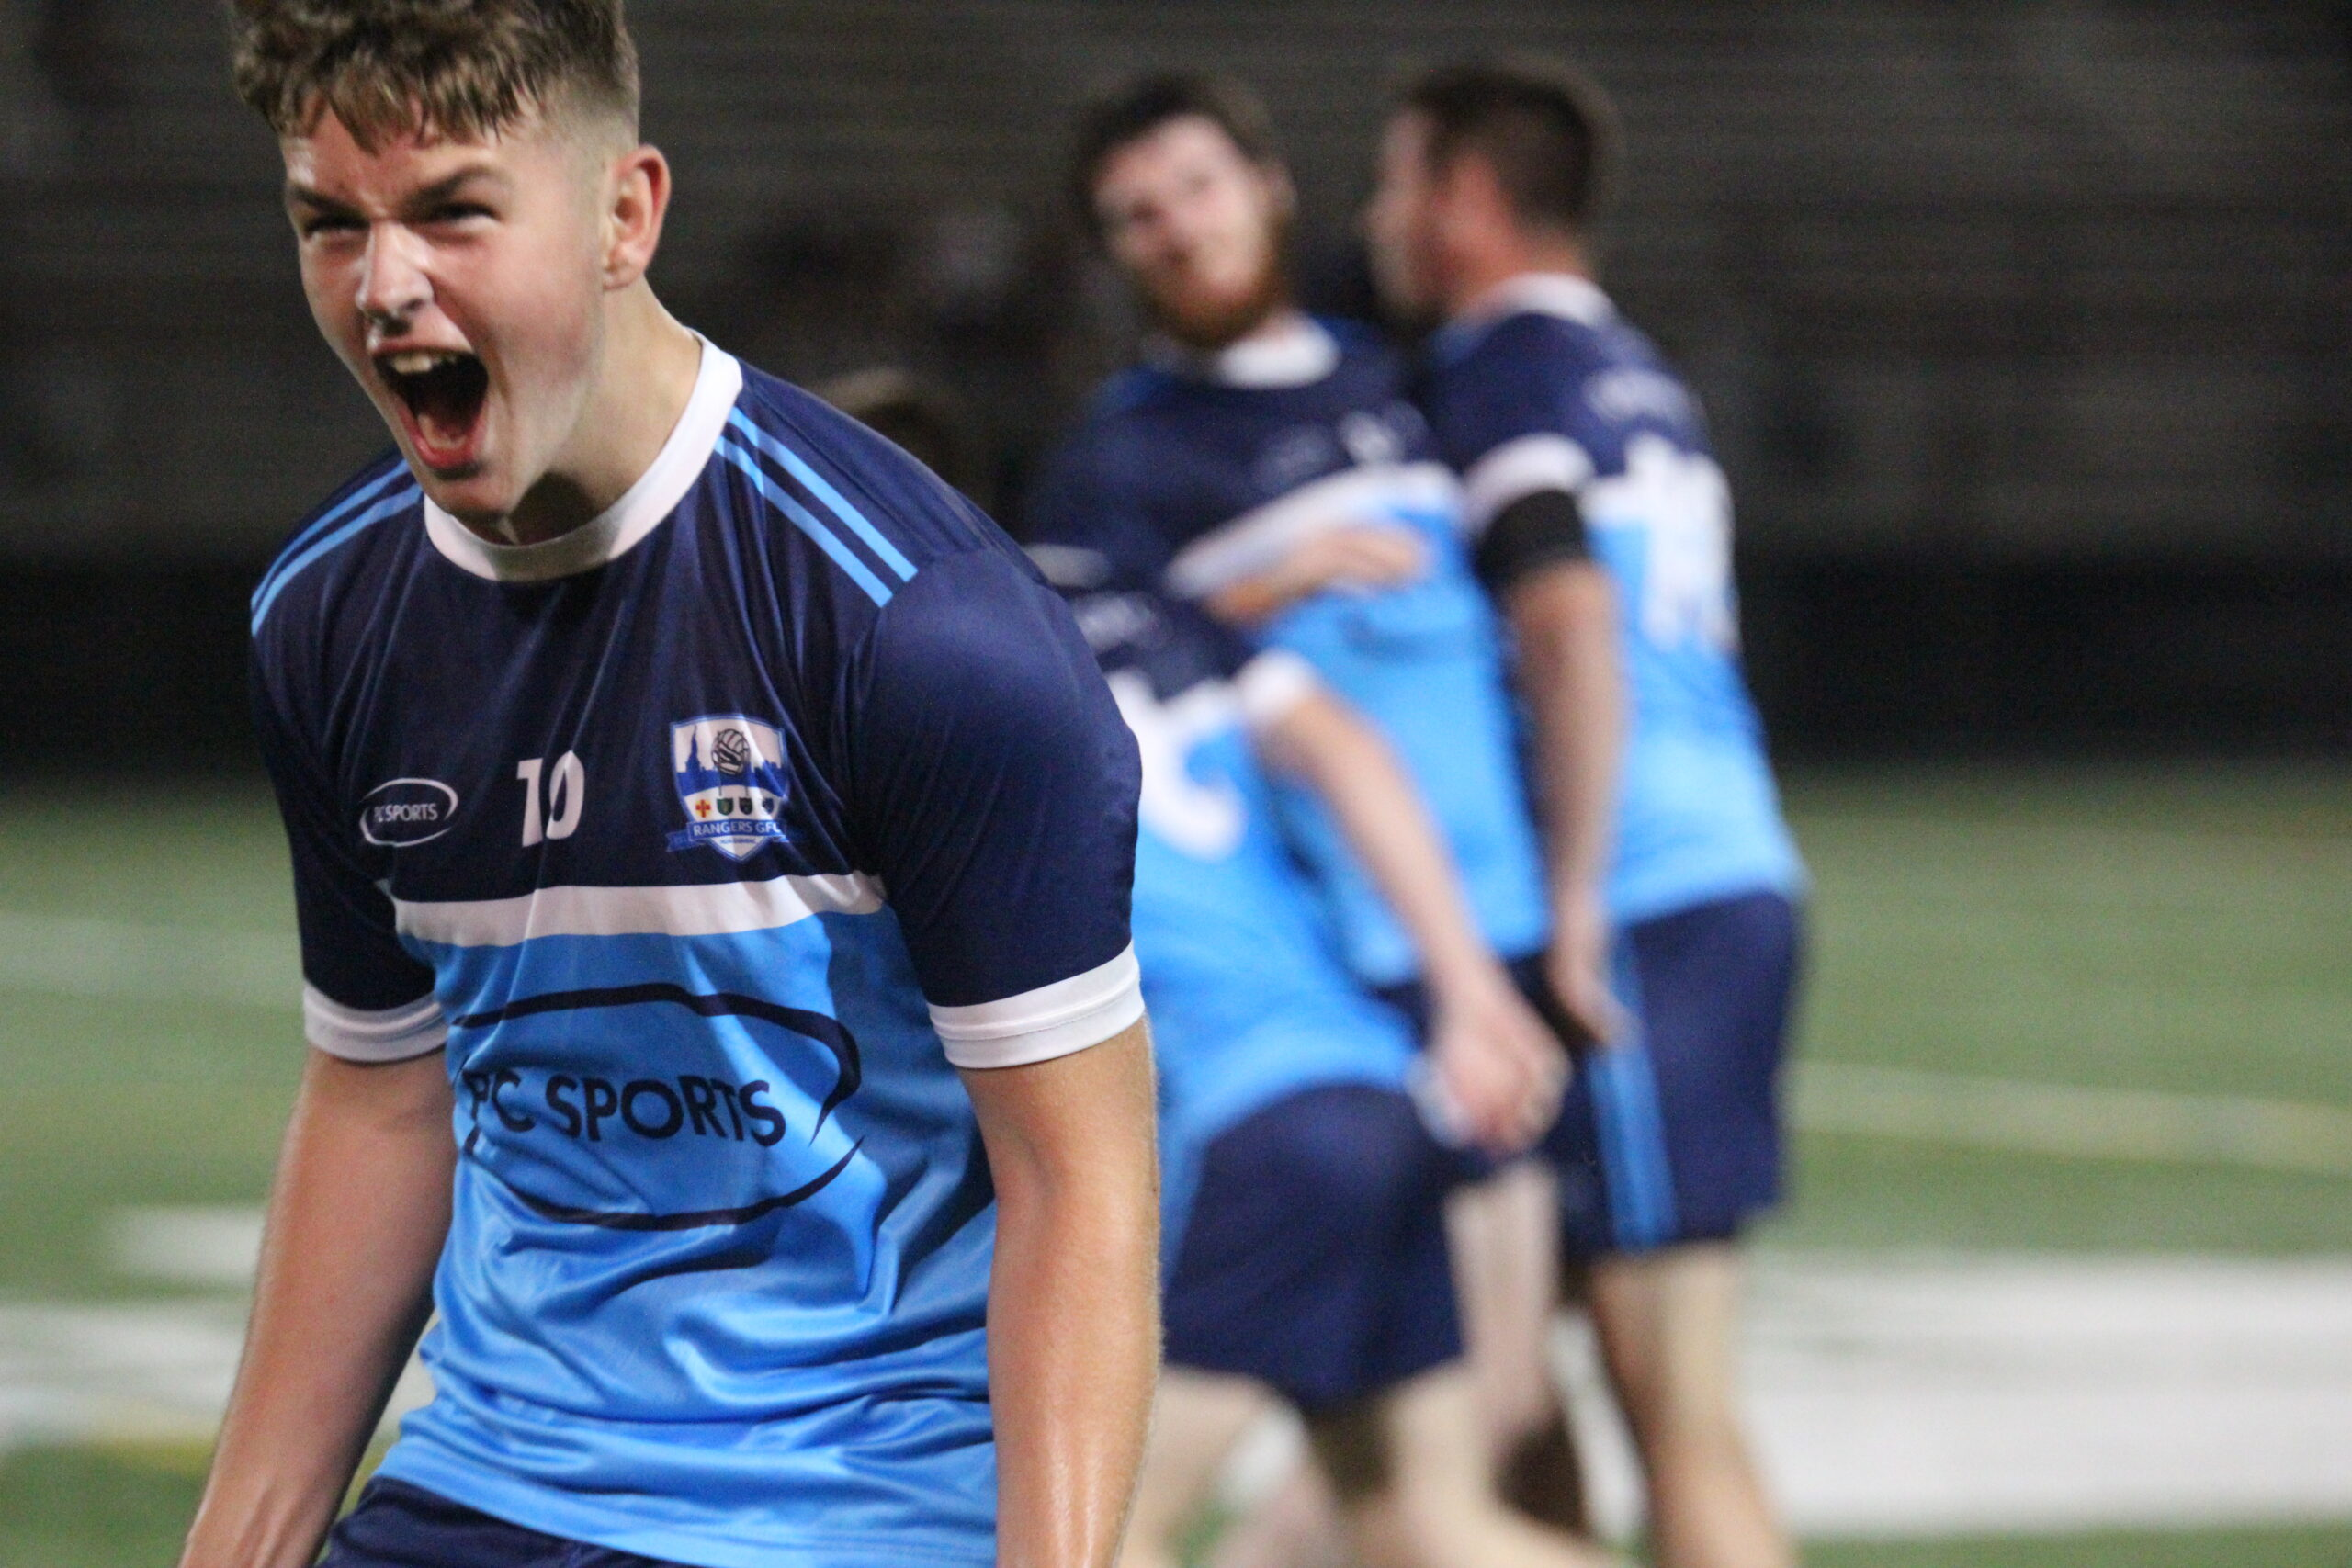 Rangers GFC player Joey Grace celebrates after the final whistle at Gaelic Park on Oct. 1, 2021. Rangers GFC v Shannon Gaels (Photo by Sharon Redican)